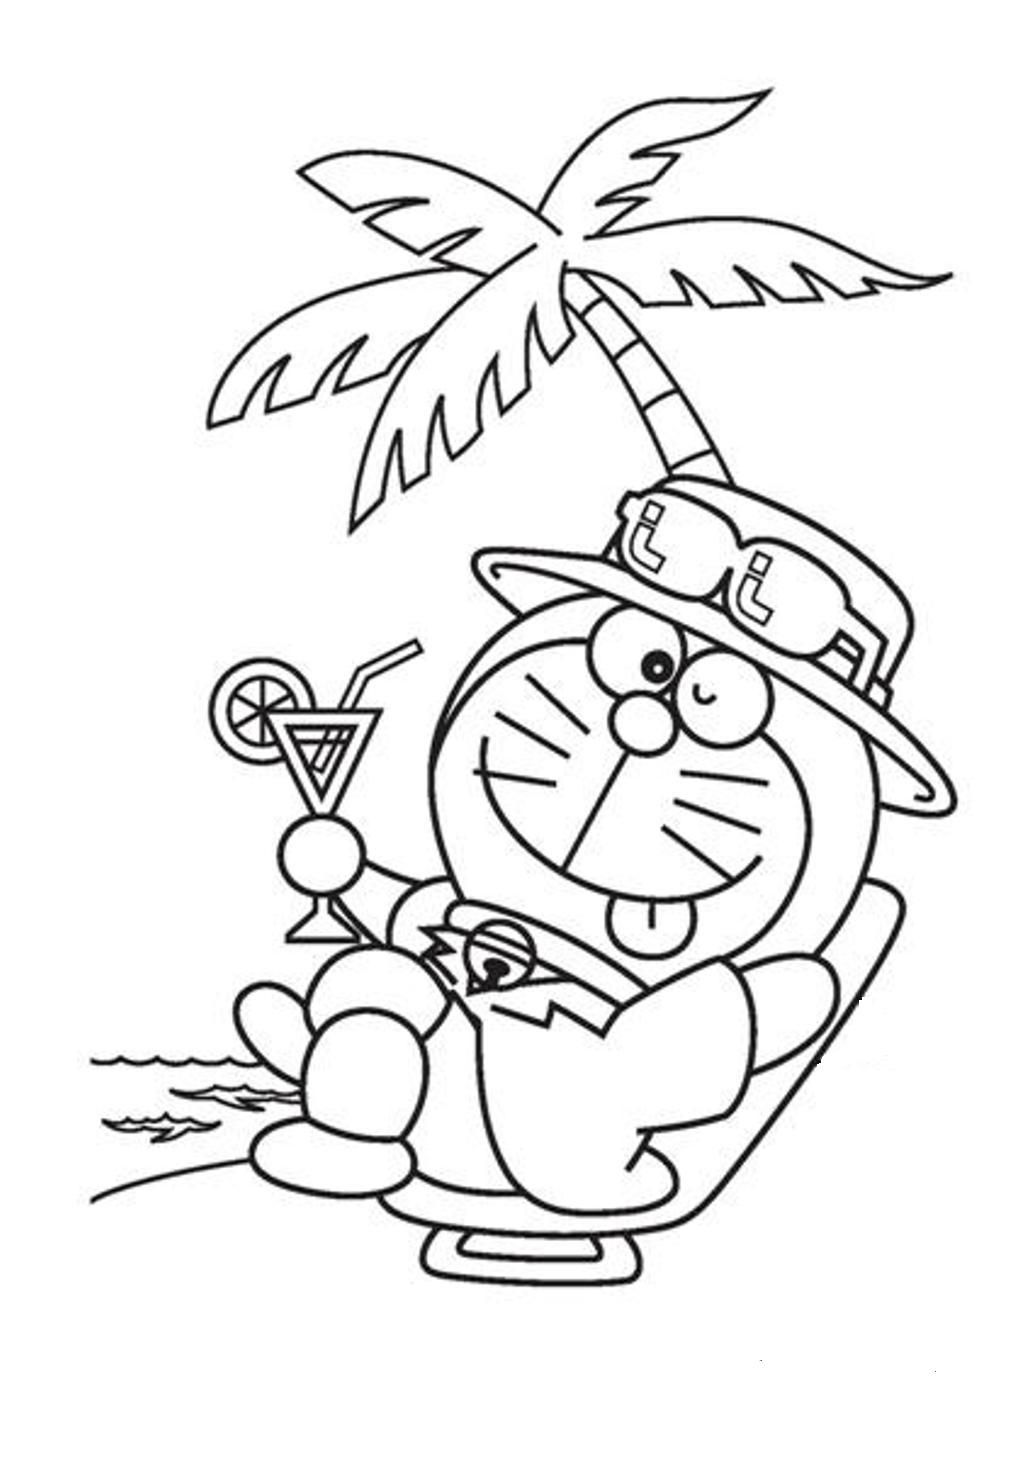 Doraemon At The Beach Coloring Page